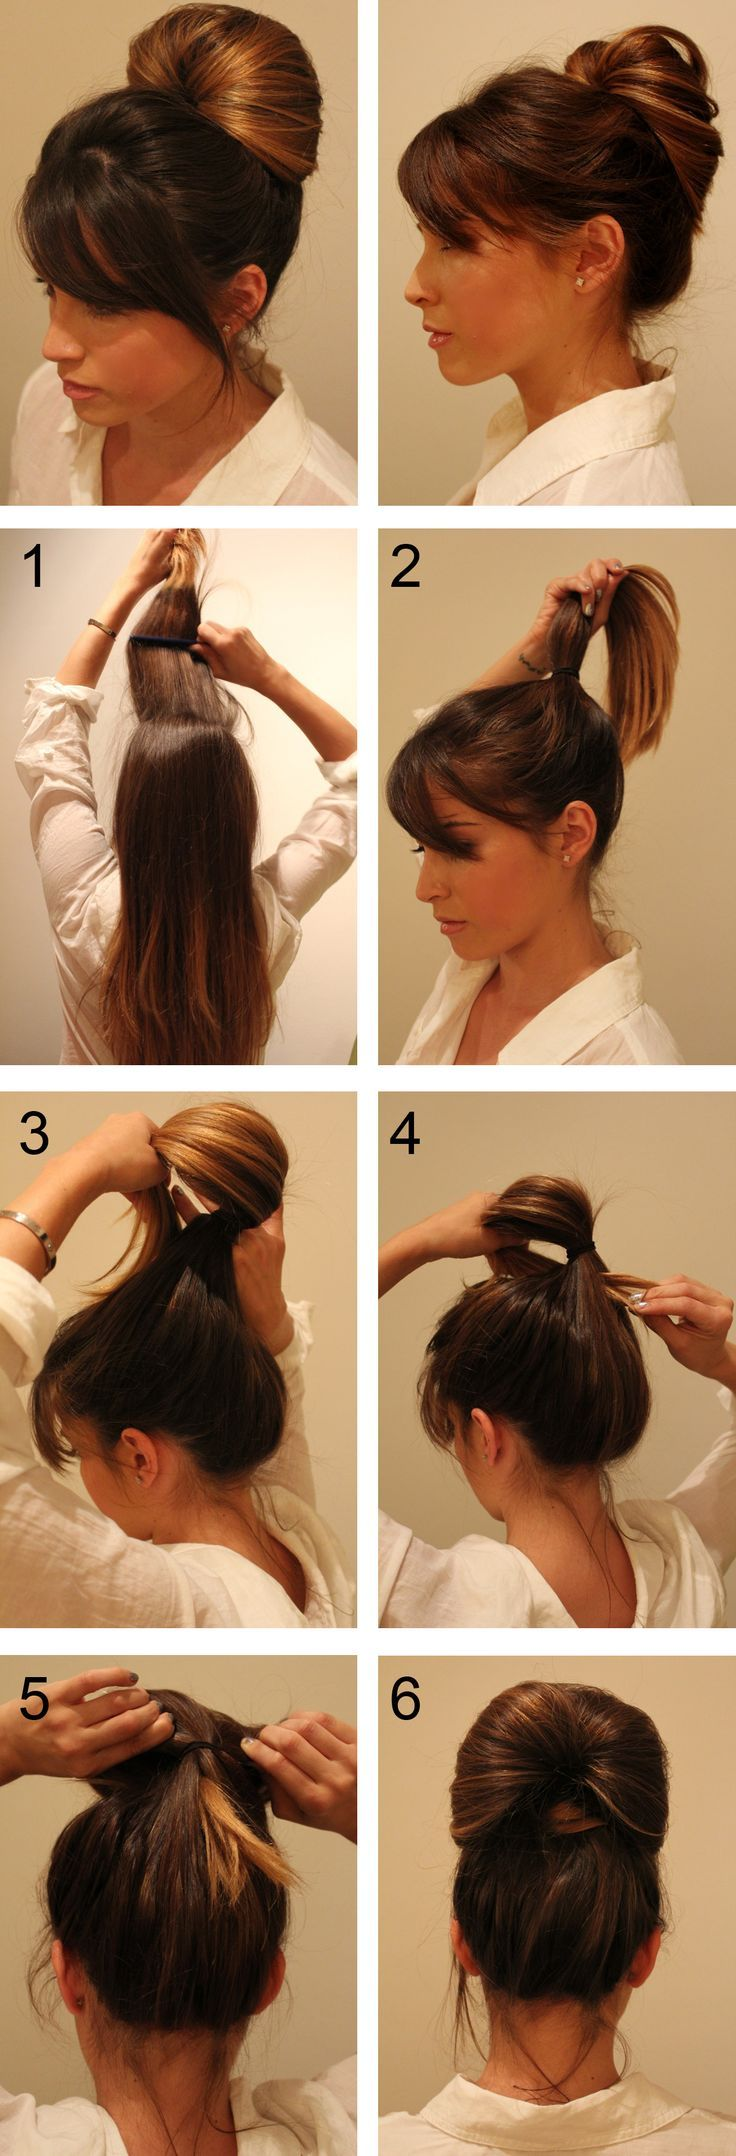 Best Quick Easy Updo Ideas On Pinterest Quick Updo Easy - Classic hairstyle tutorials